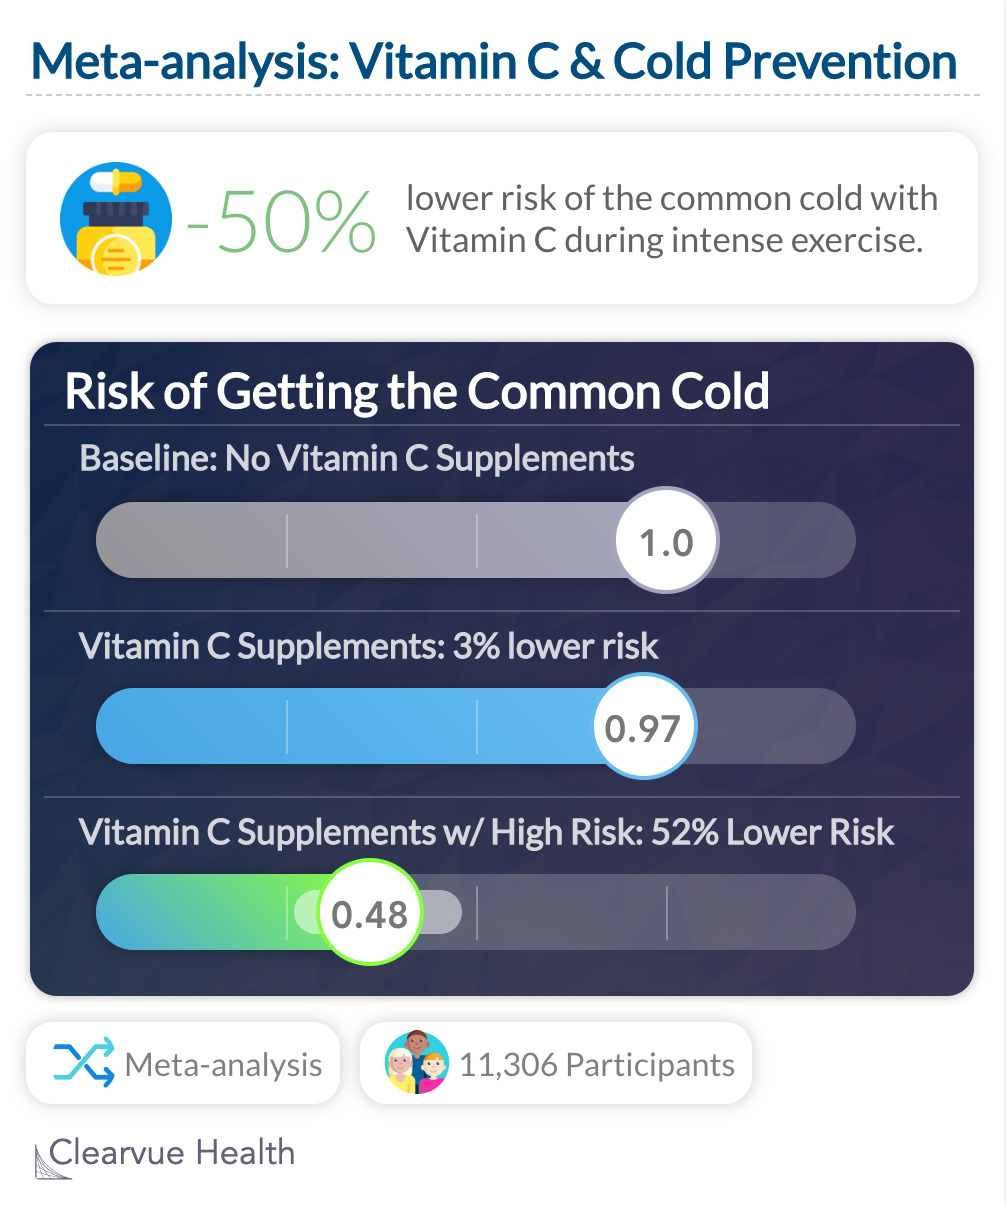 Meta-analysis: Vitamin C & Cold Prevention